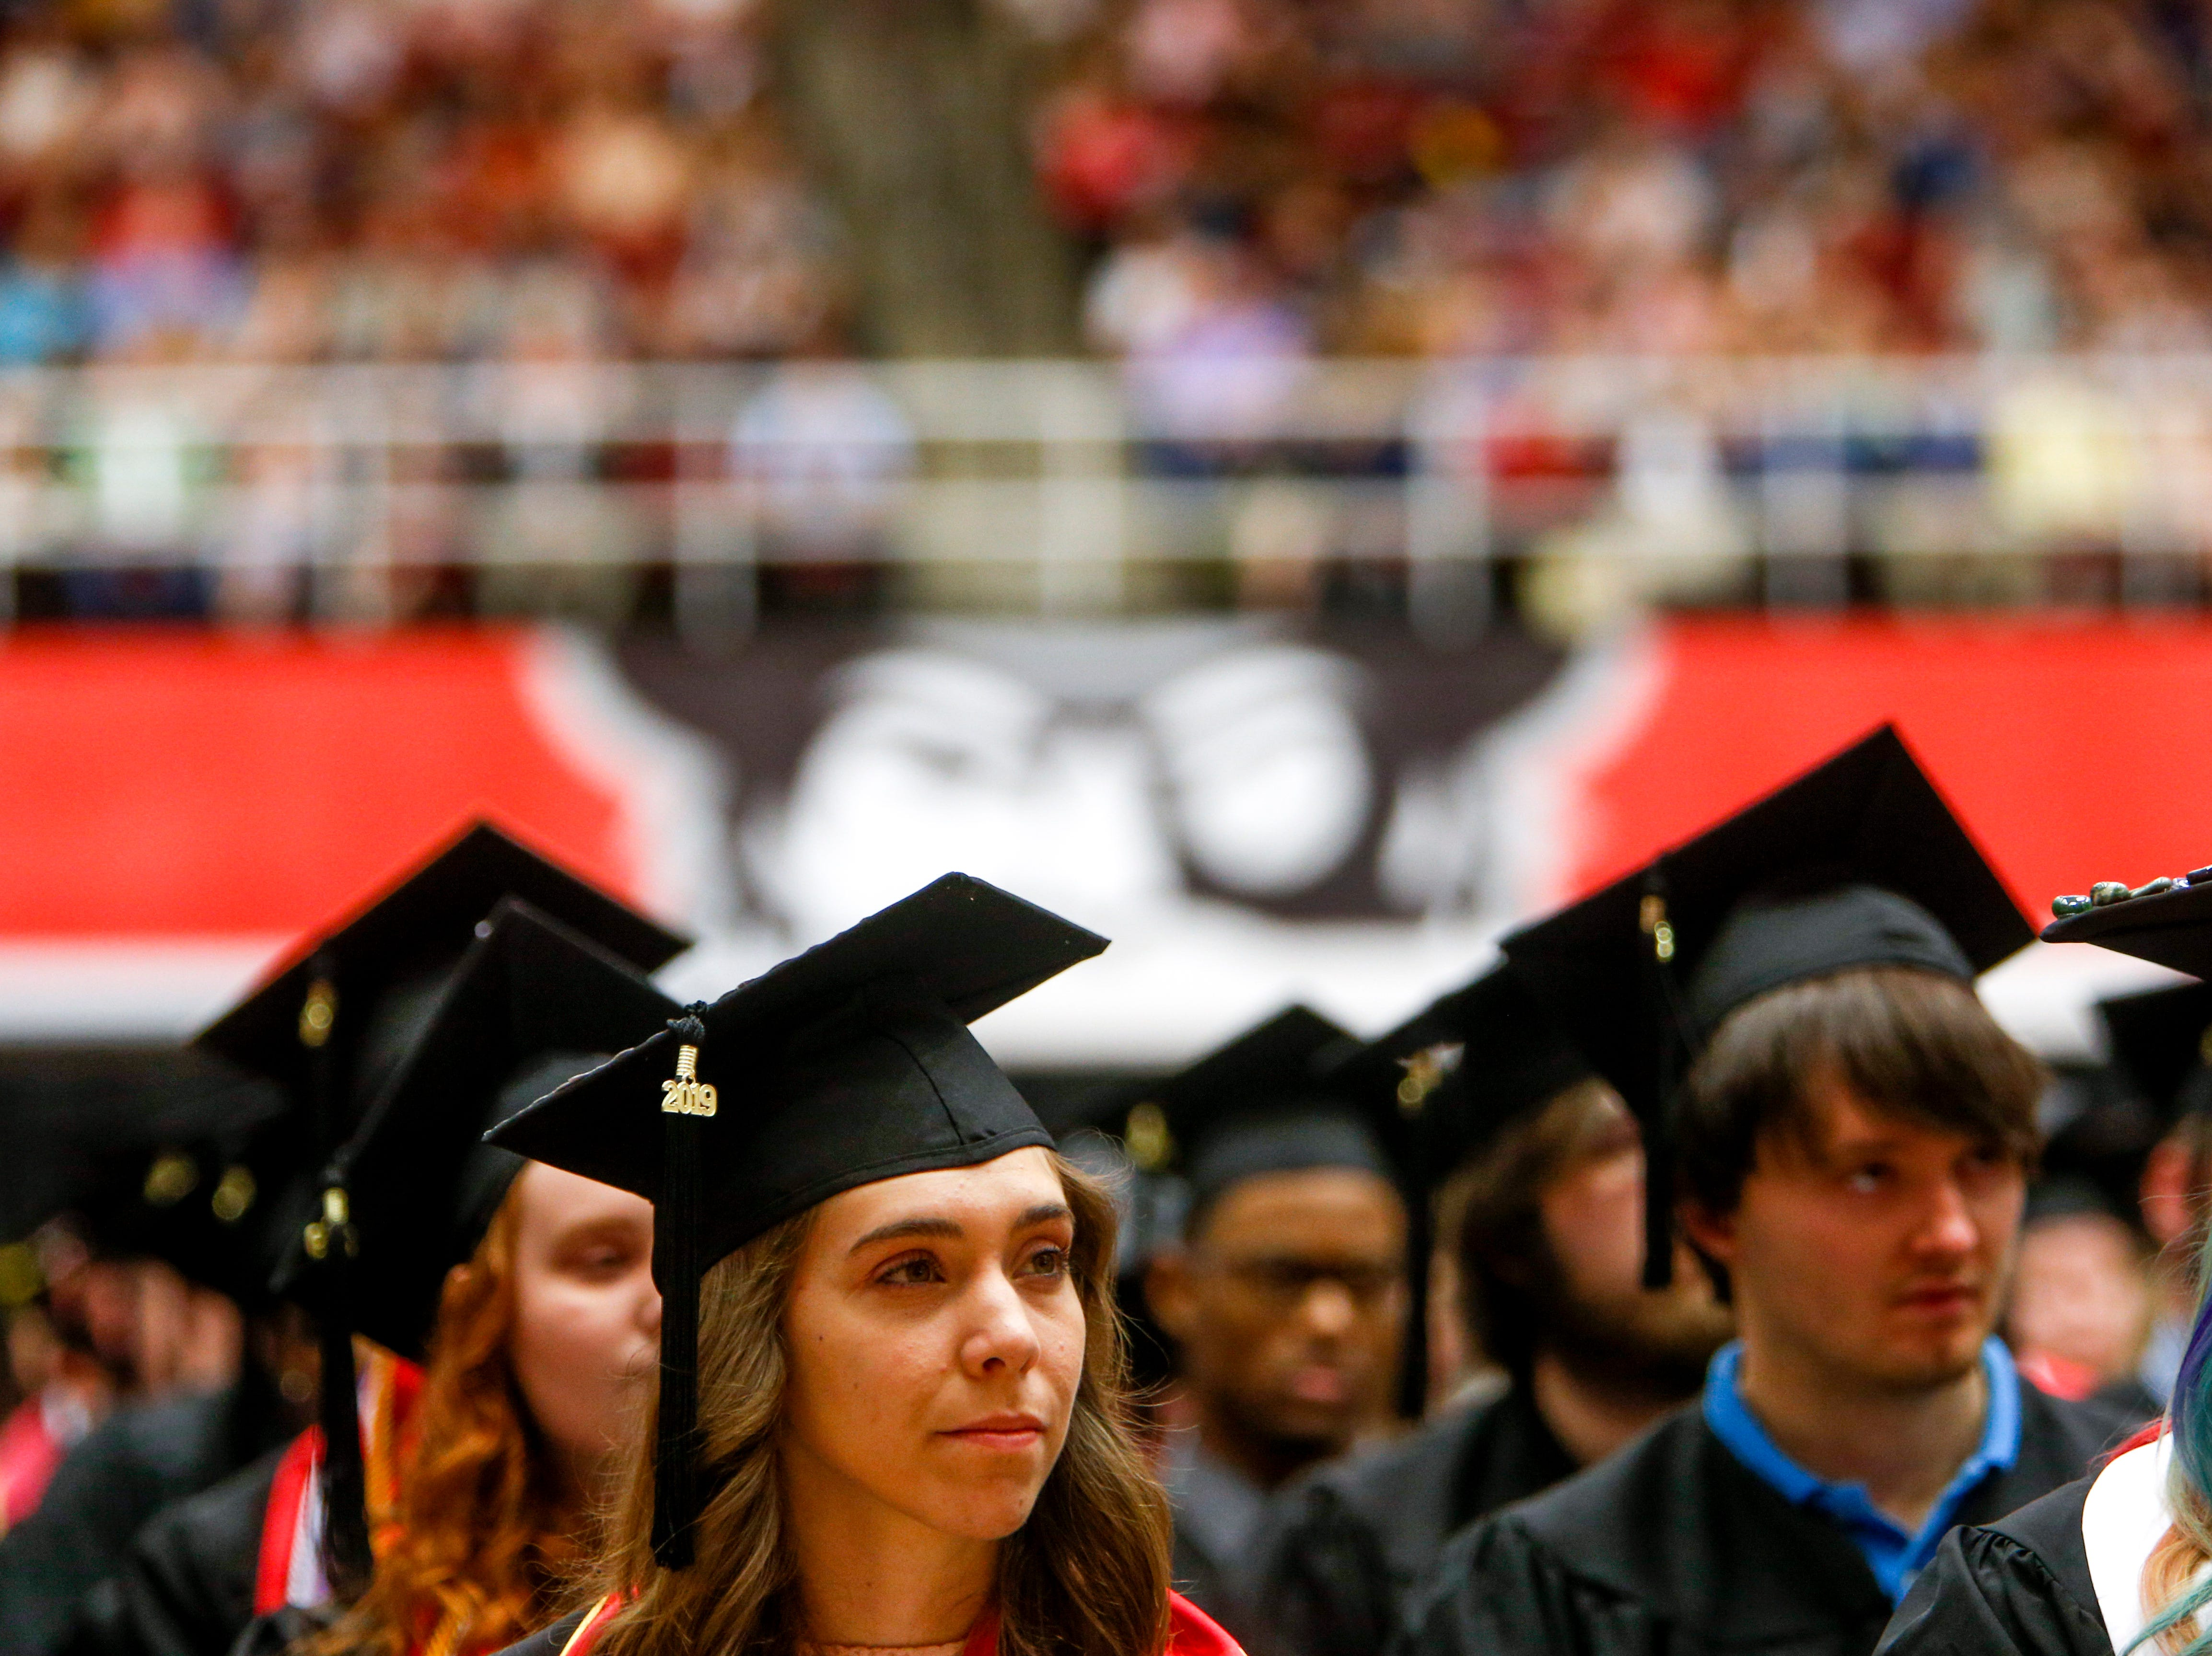 Students listen to former Tennessee Gov Bill Haslam speak at the Austin Peay spring commencement ceremony 2019 for College of Business and College of STEM at Winfield Dunn Center in Clarksville, Tenn., on Friday, May 3, 2019.